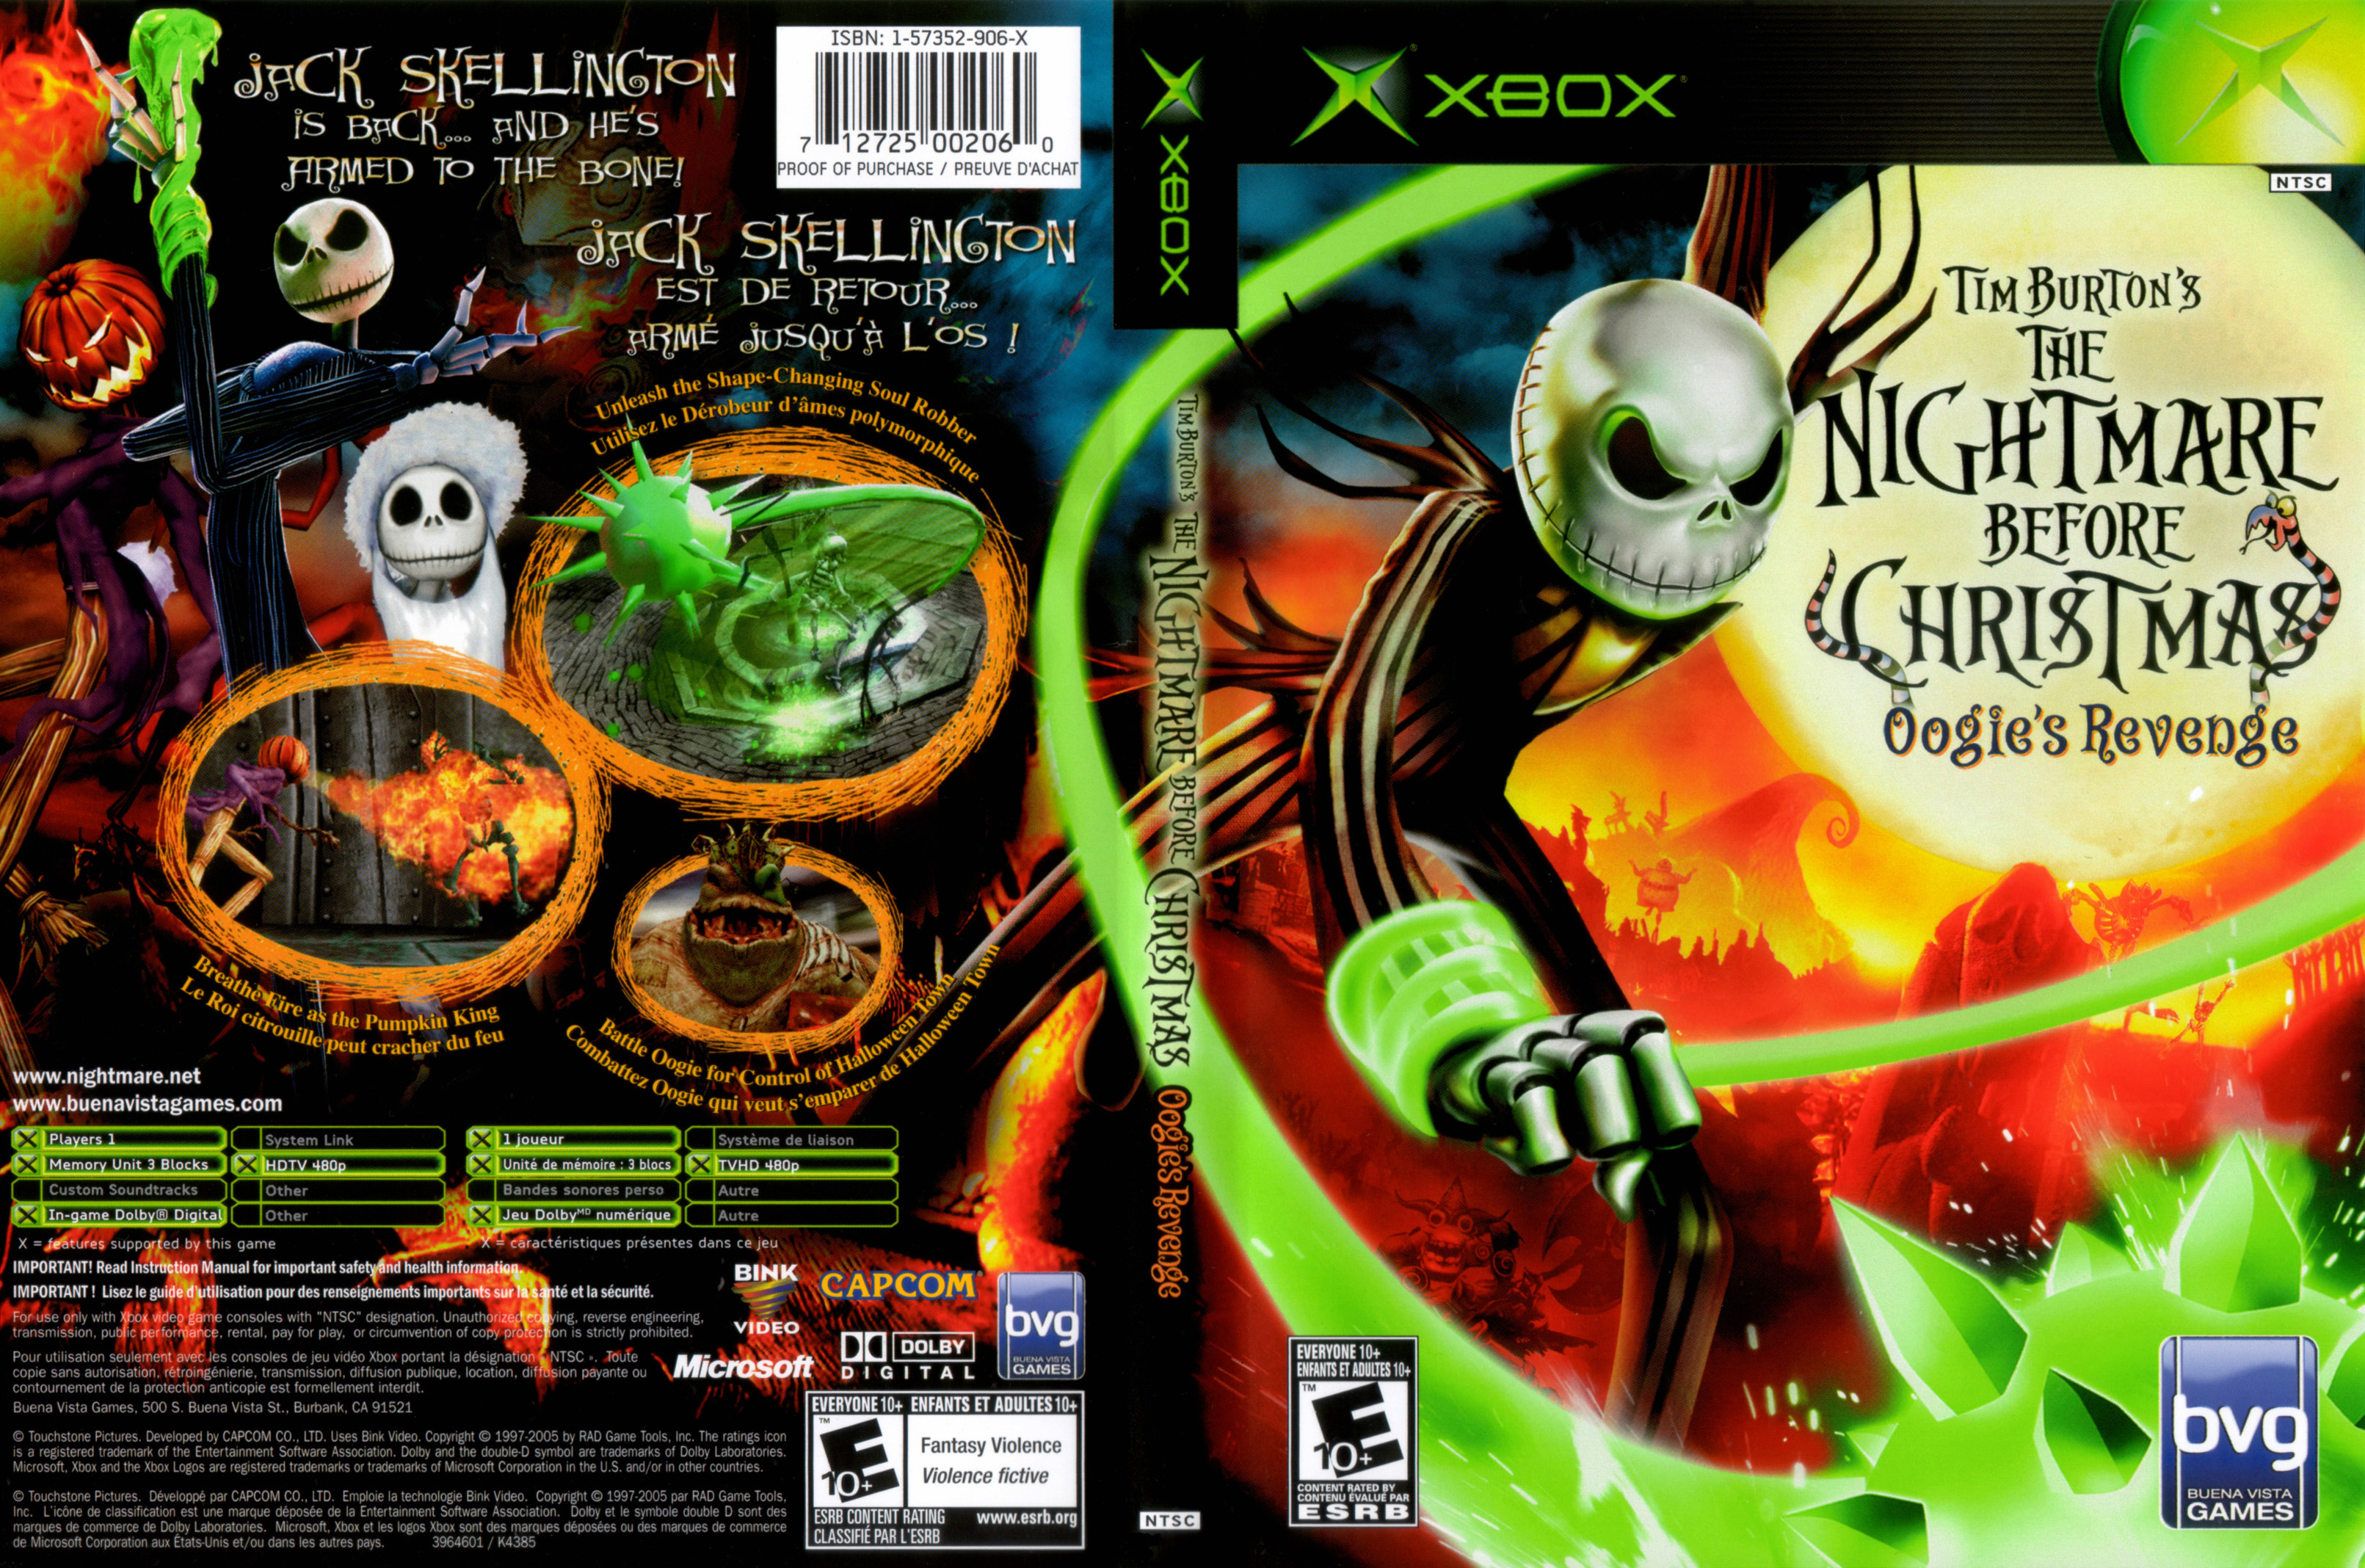 ... Xbox - Tim Burtons The Nightmare Before Christmas Oogies Revenge